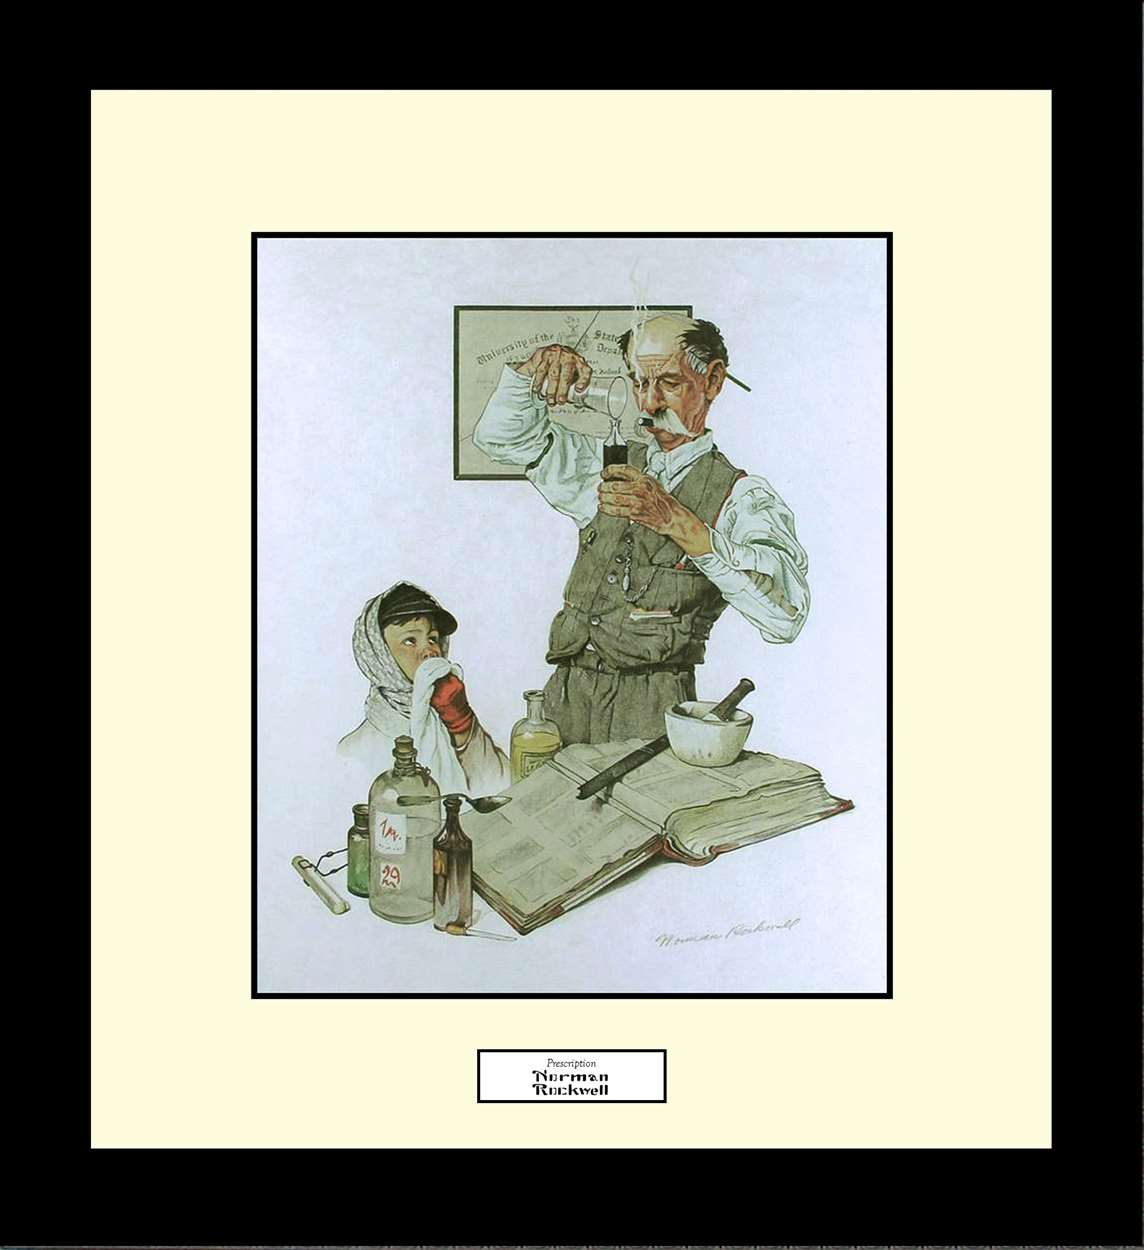 Prescription, Norman Rockwell, 16x18